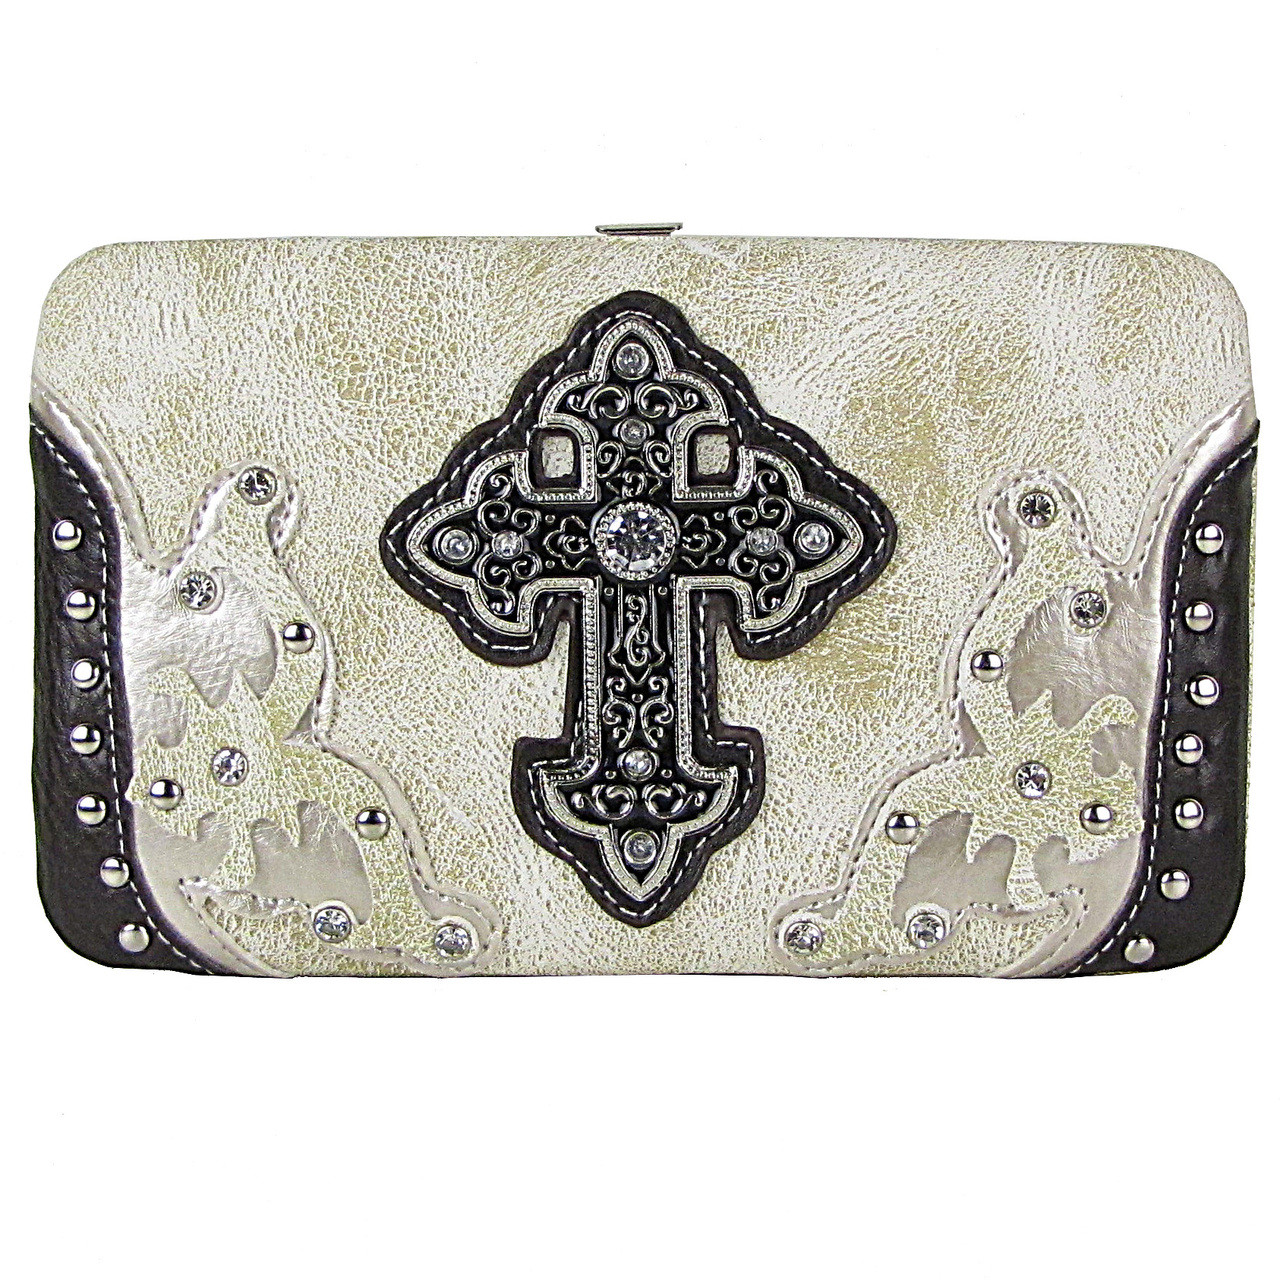 CREAM STUDDED CROSS WESTERN DESIGN LOOK FLAT THICK WALLET FW2-0458CRM